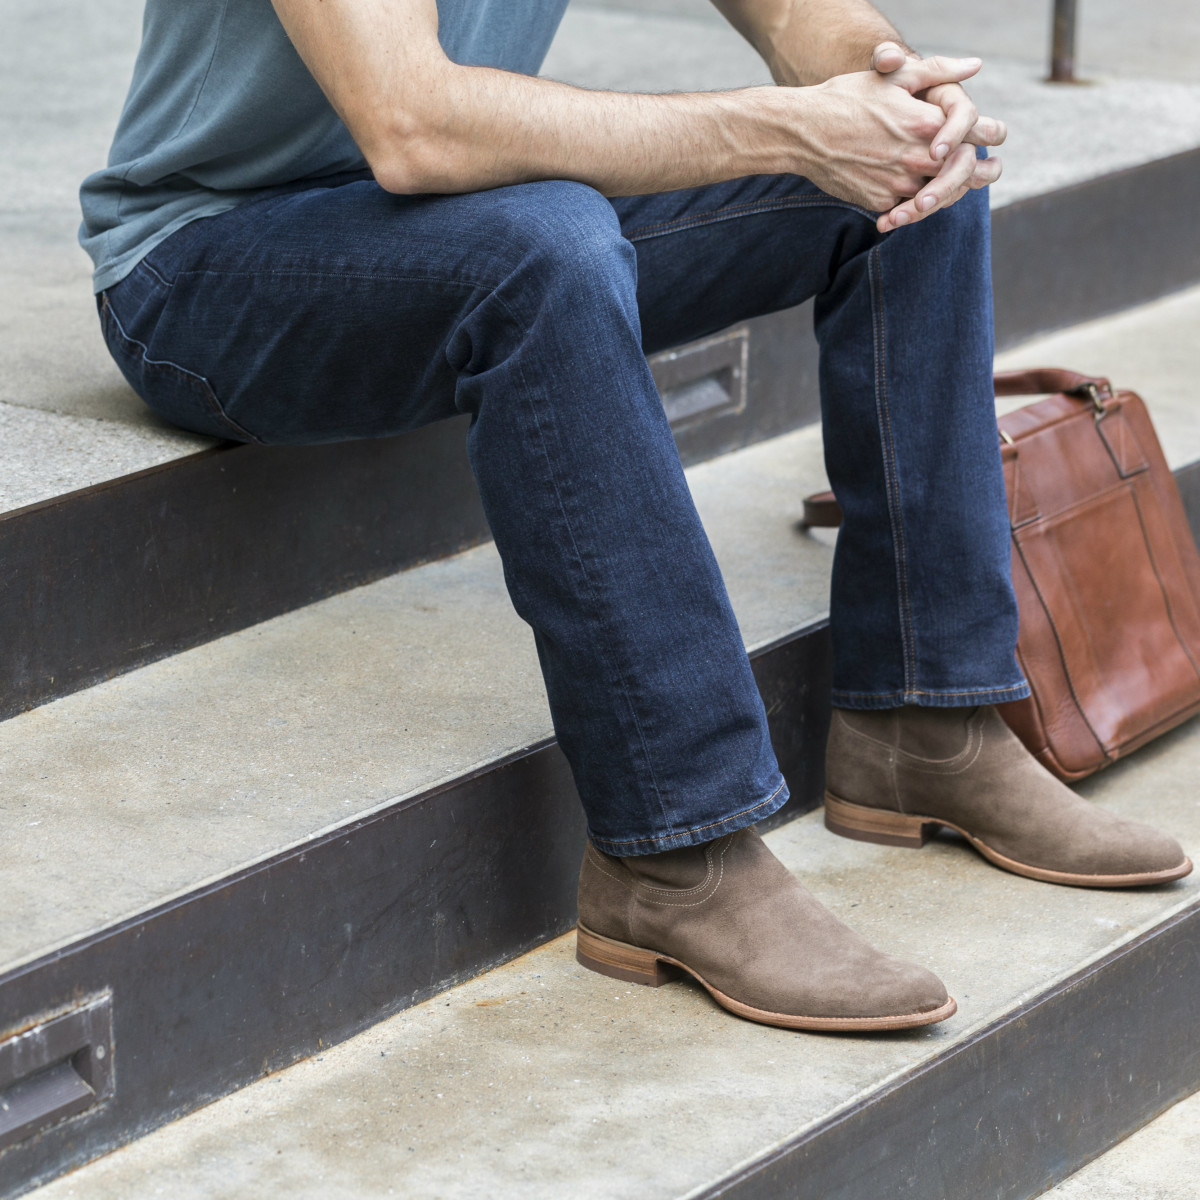 Texas Boot Brand Steps Into Apparel With First Denim